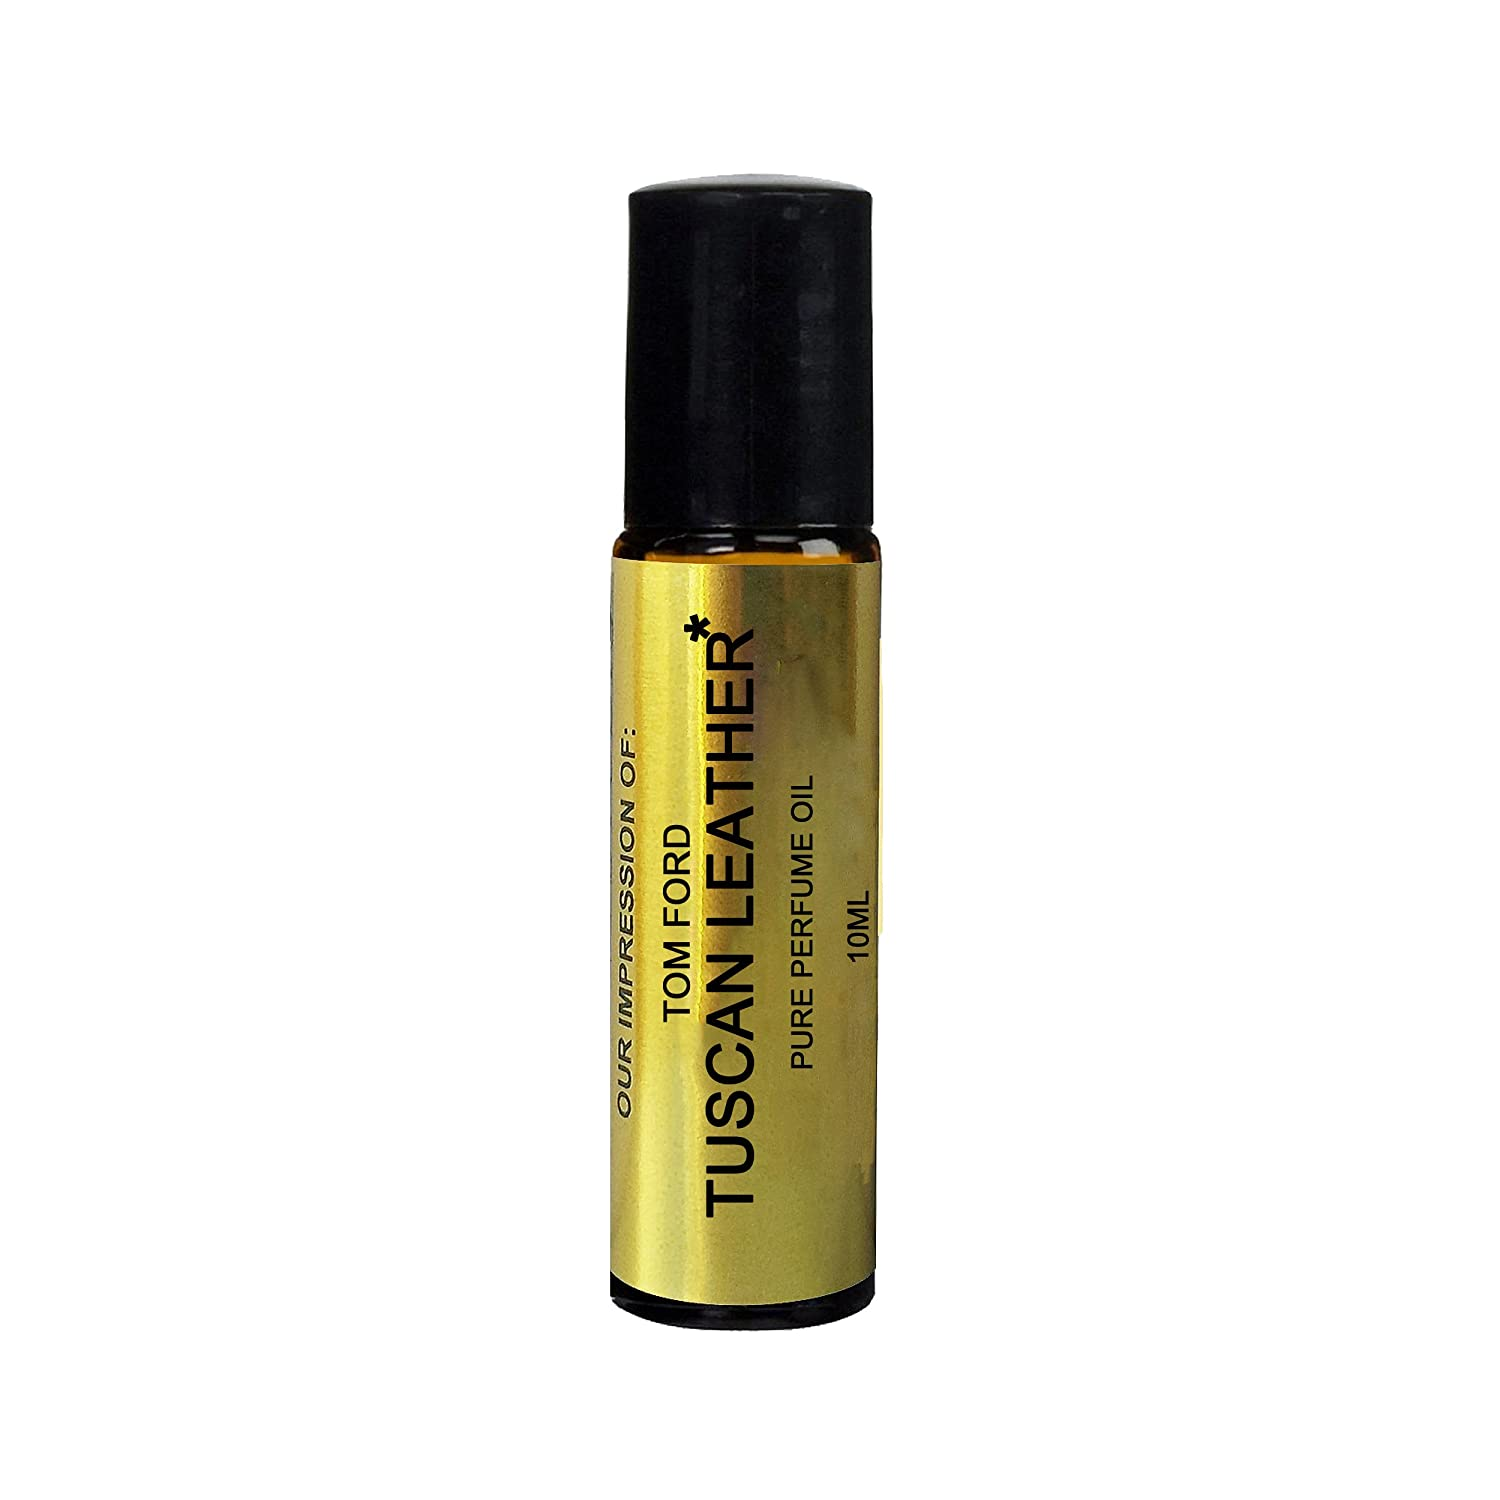 Pure Perfume Oil IMPRESSION with SIMILAR Accords to: -{*TF TUSCAN LEATHER*}; Long Lasting Scent, No Alcohol Oil - Perfume Oil VERSION/TYPE; Not Original Brand (10ML ROLLER BOTTLE) Perfume Studio